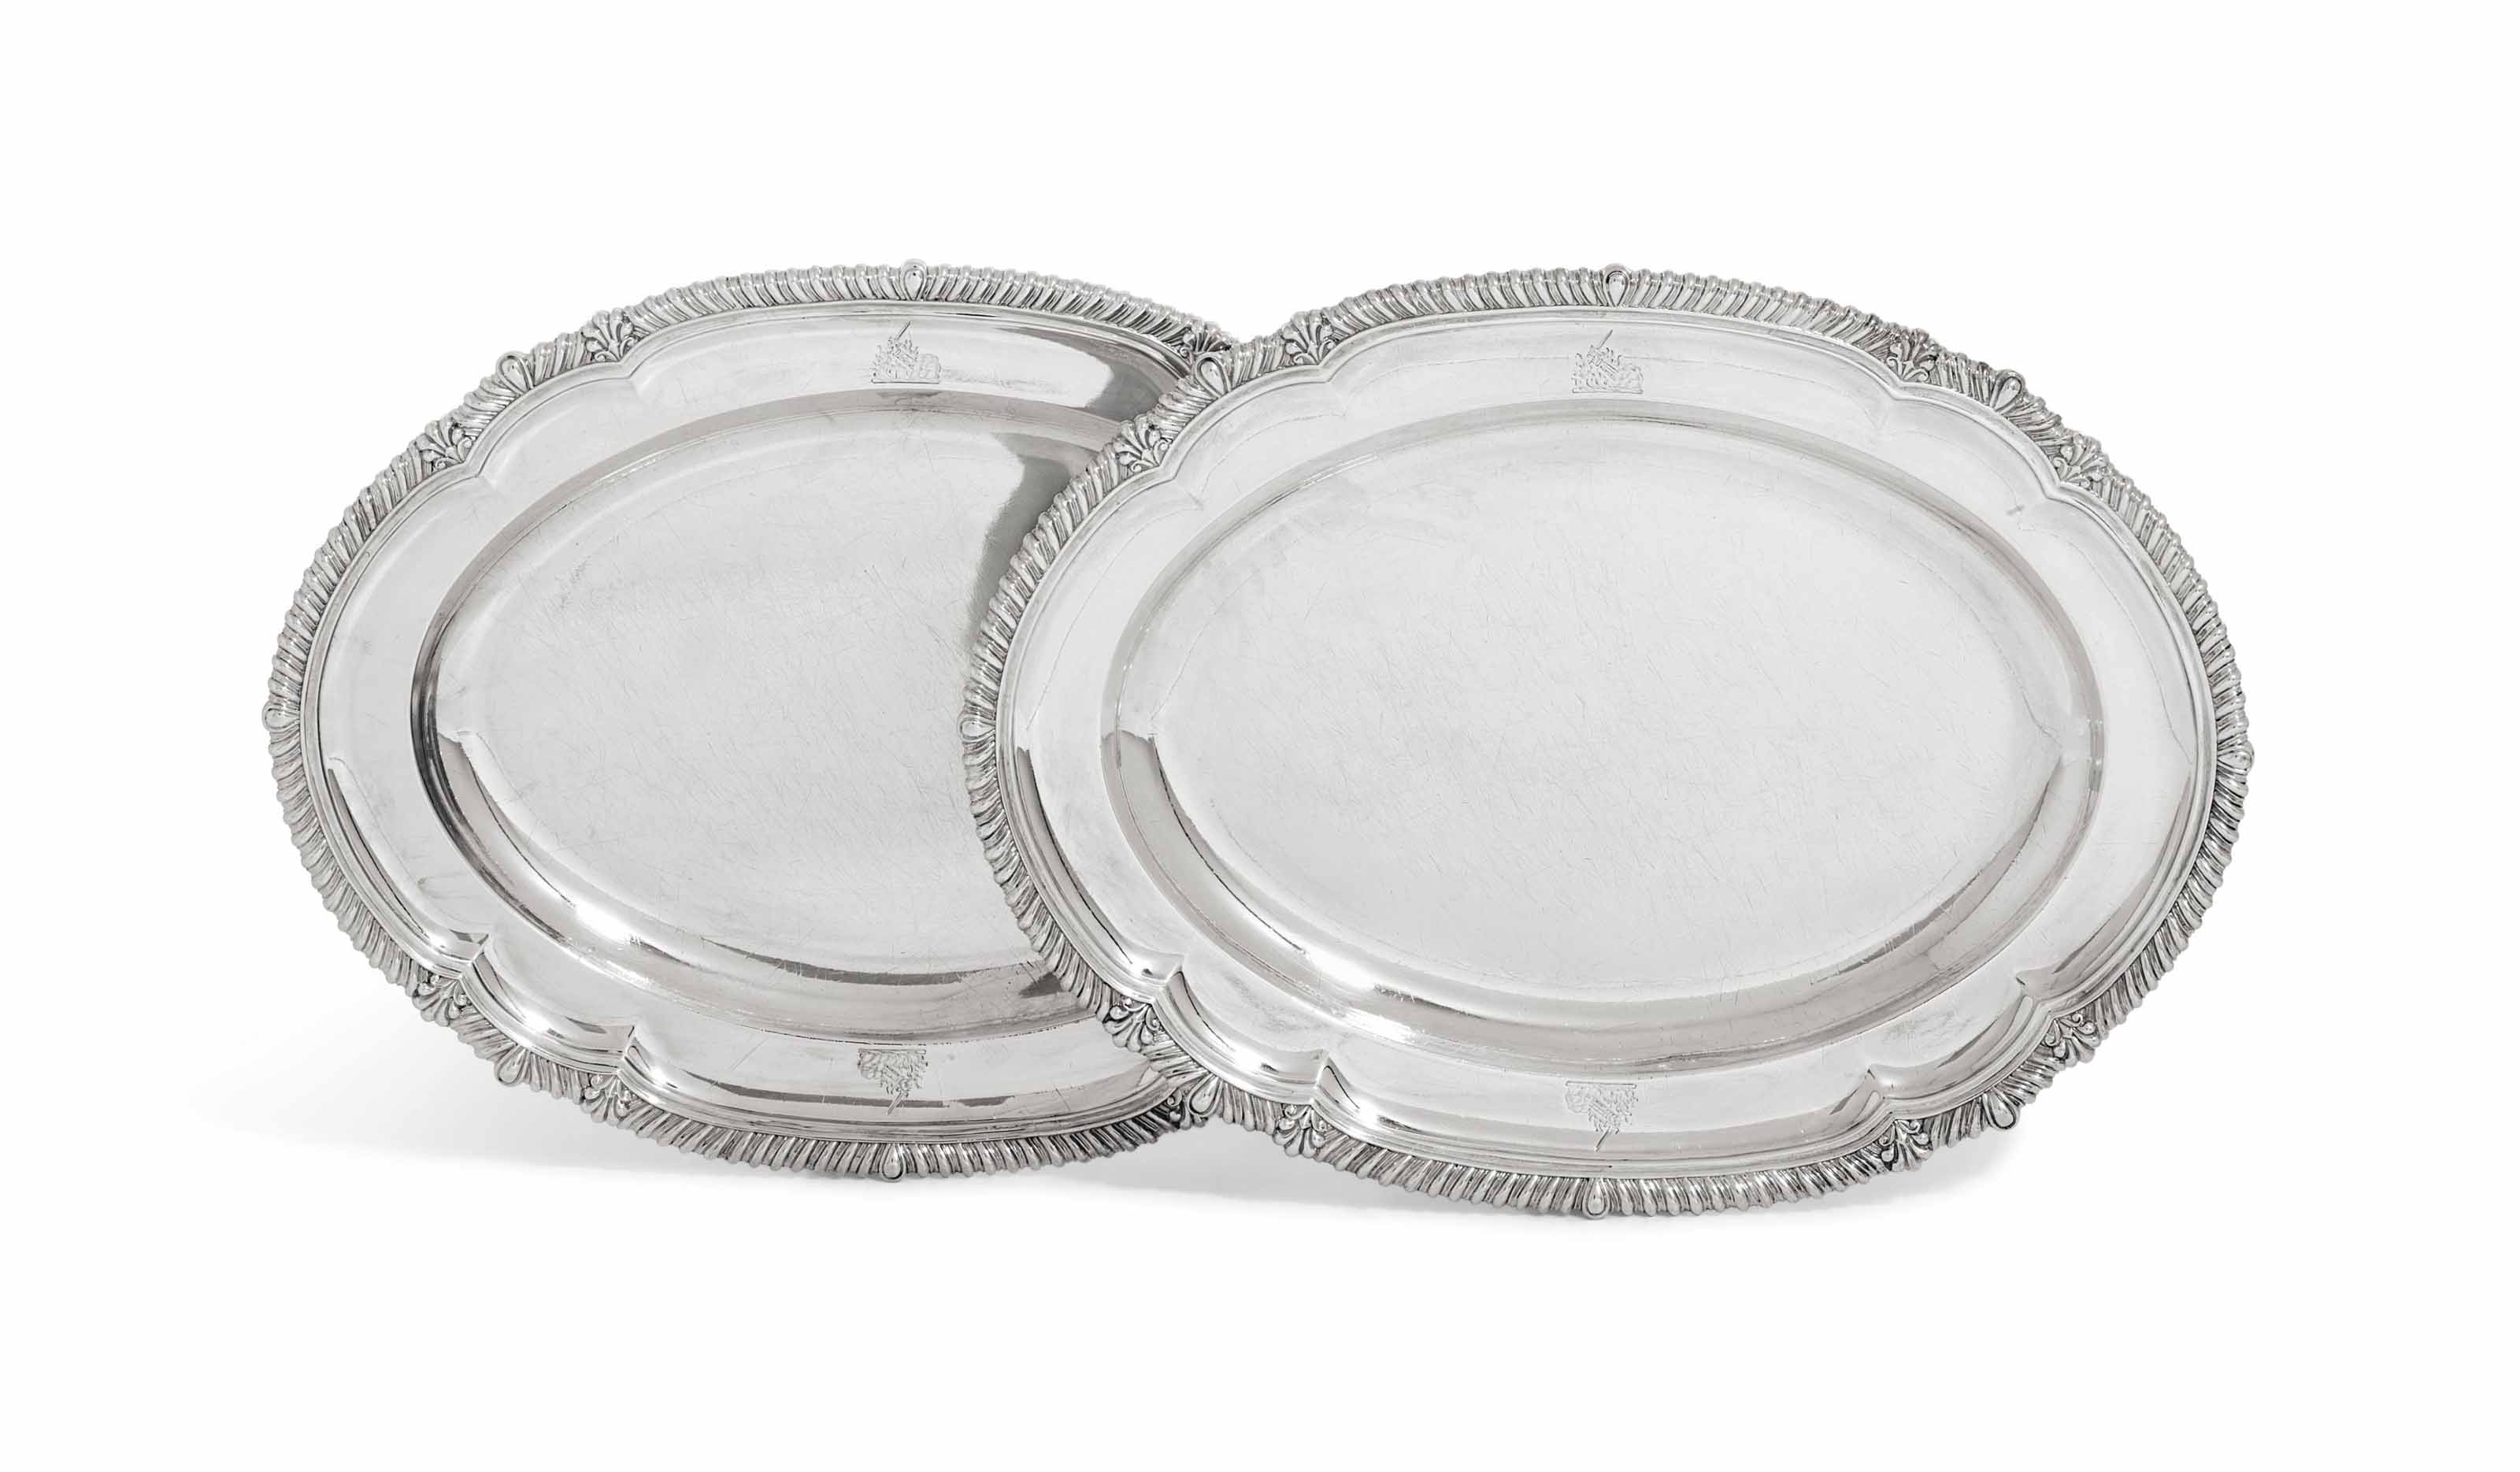 A PAIR OF GEORGE IV SILVER MEAT-DISHES